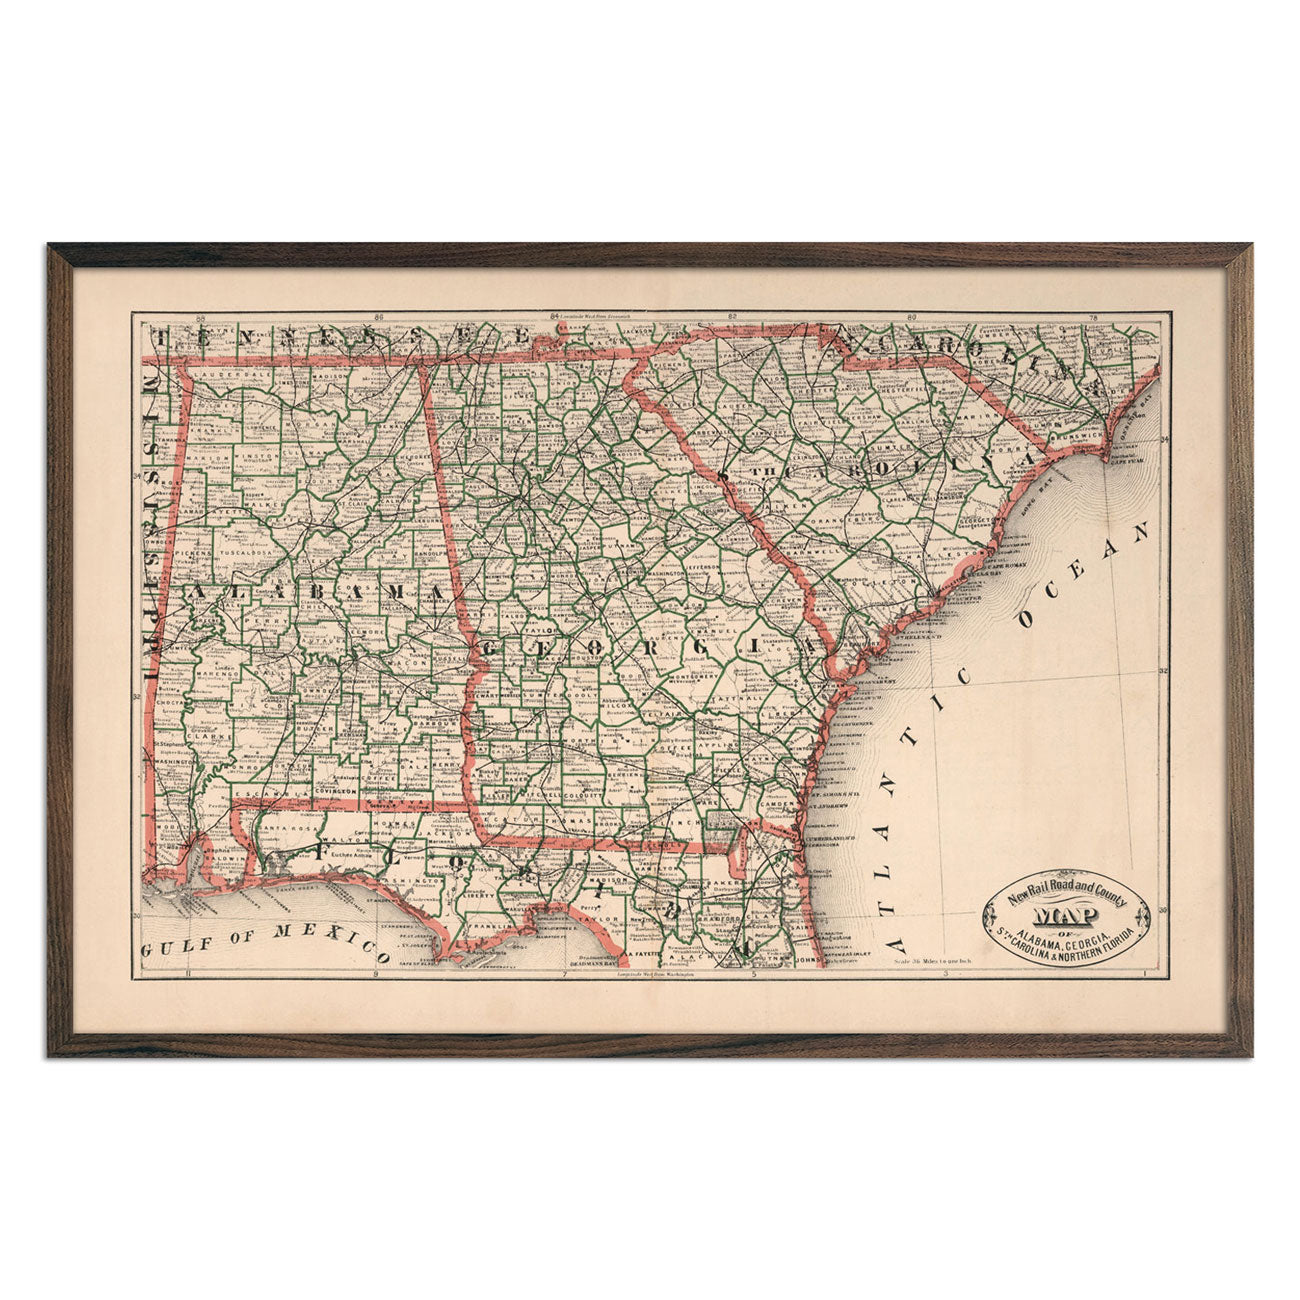 Alabama, Georgia, South Carolina and Northern Florida 1883 Map